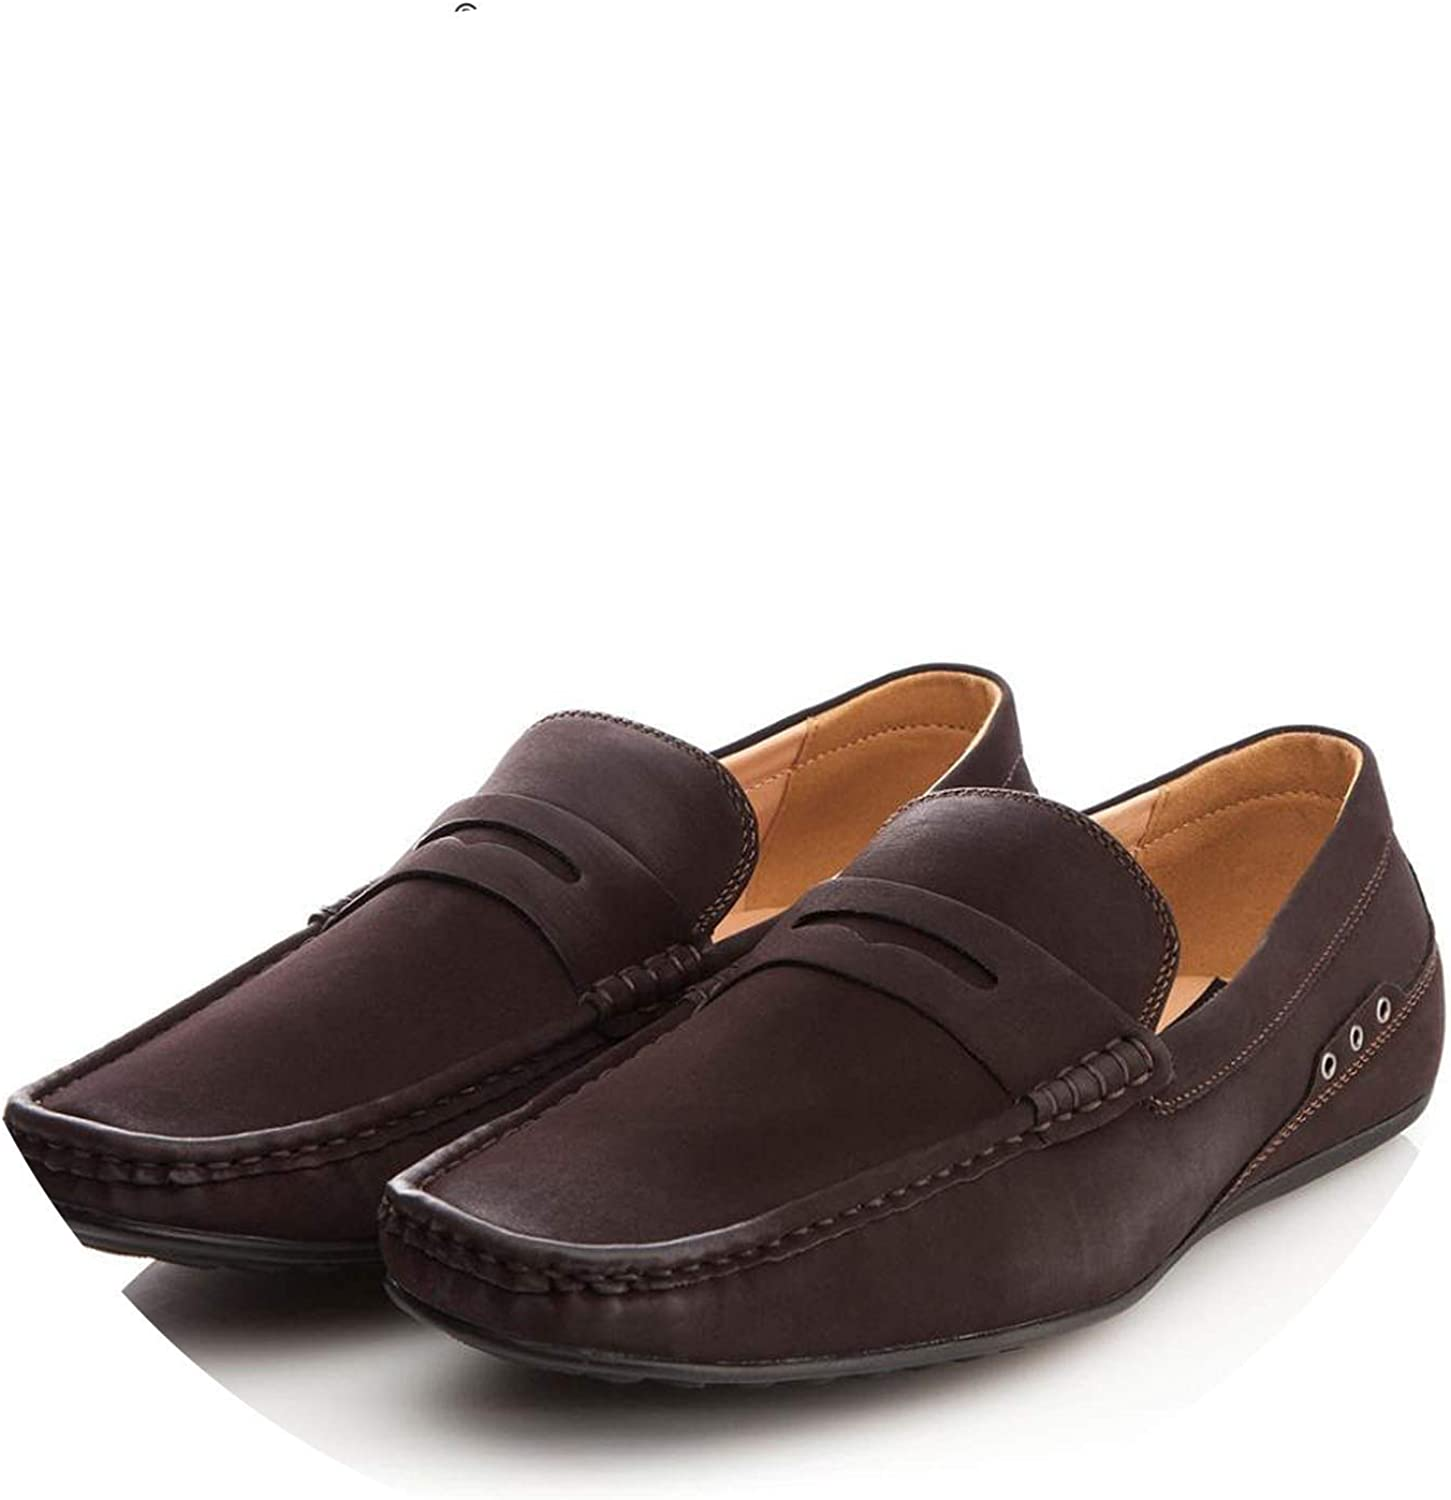 Get-in Men Loafers Driving Shoes Men Artificial Leather Shoes Wear Comfortable Men Walking Shoes Brown #CE86810